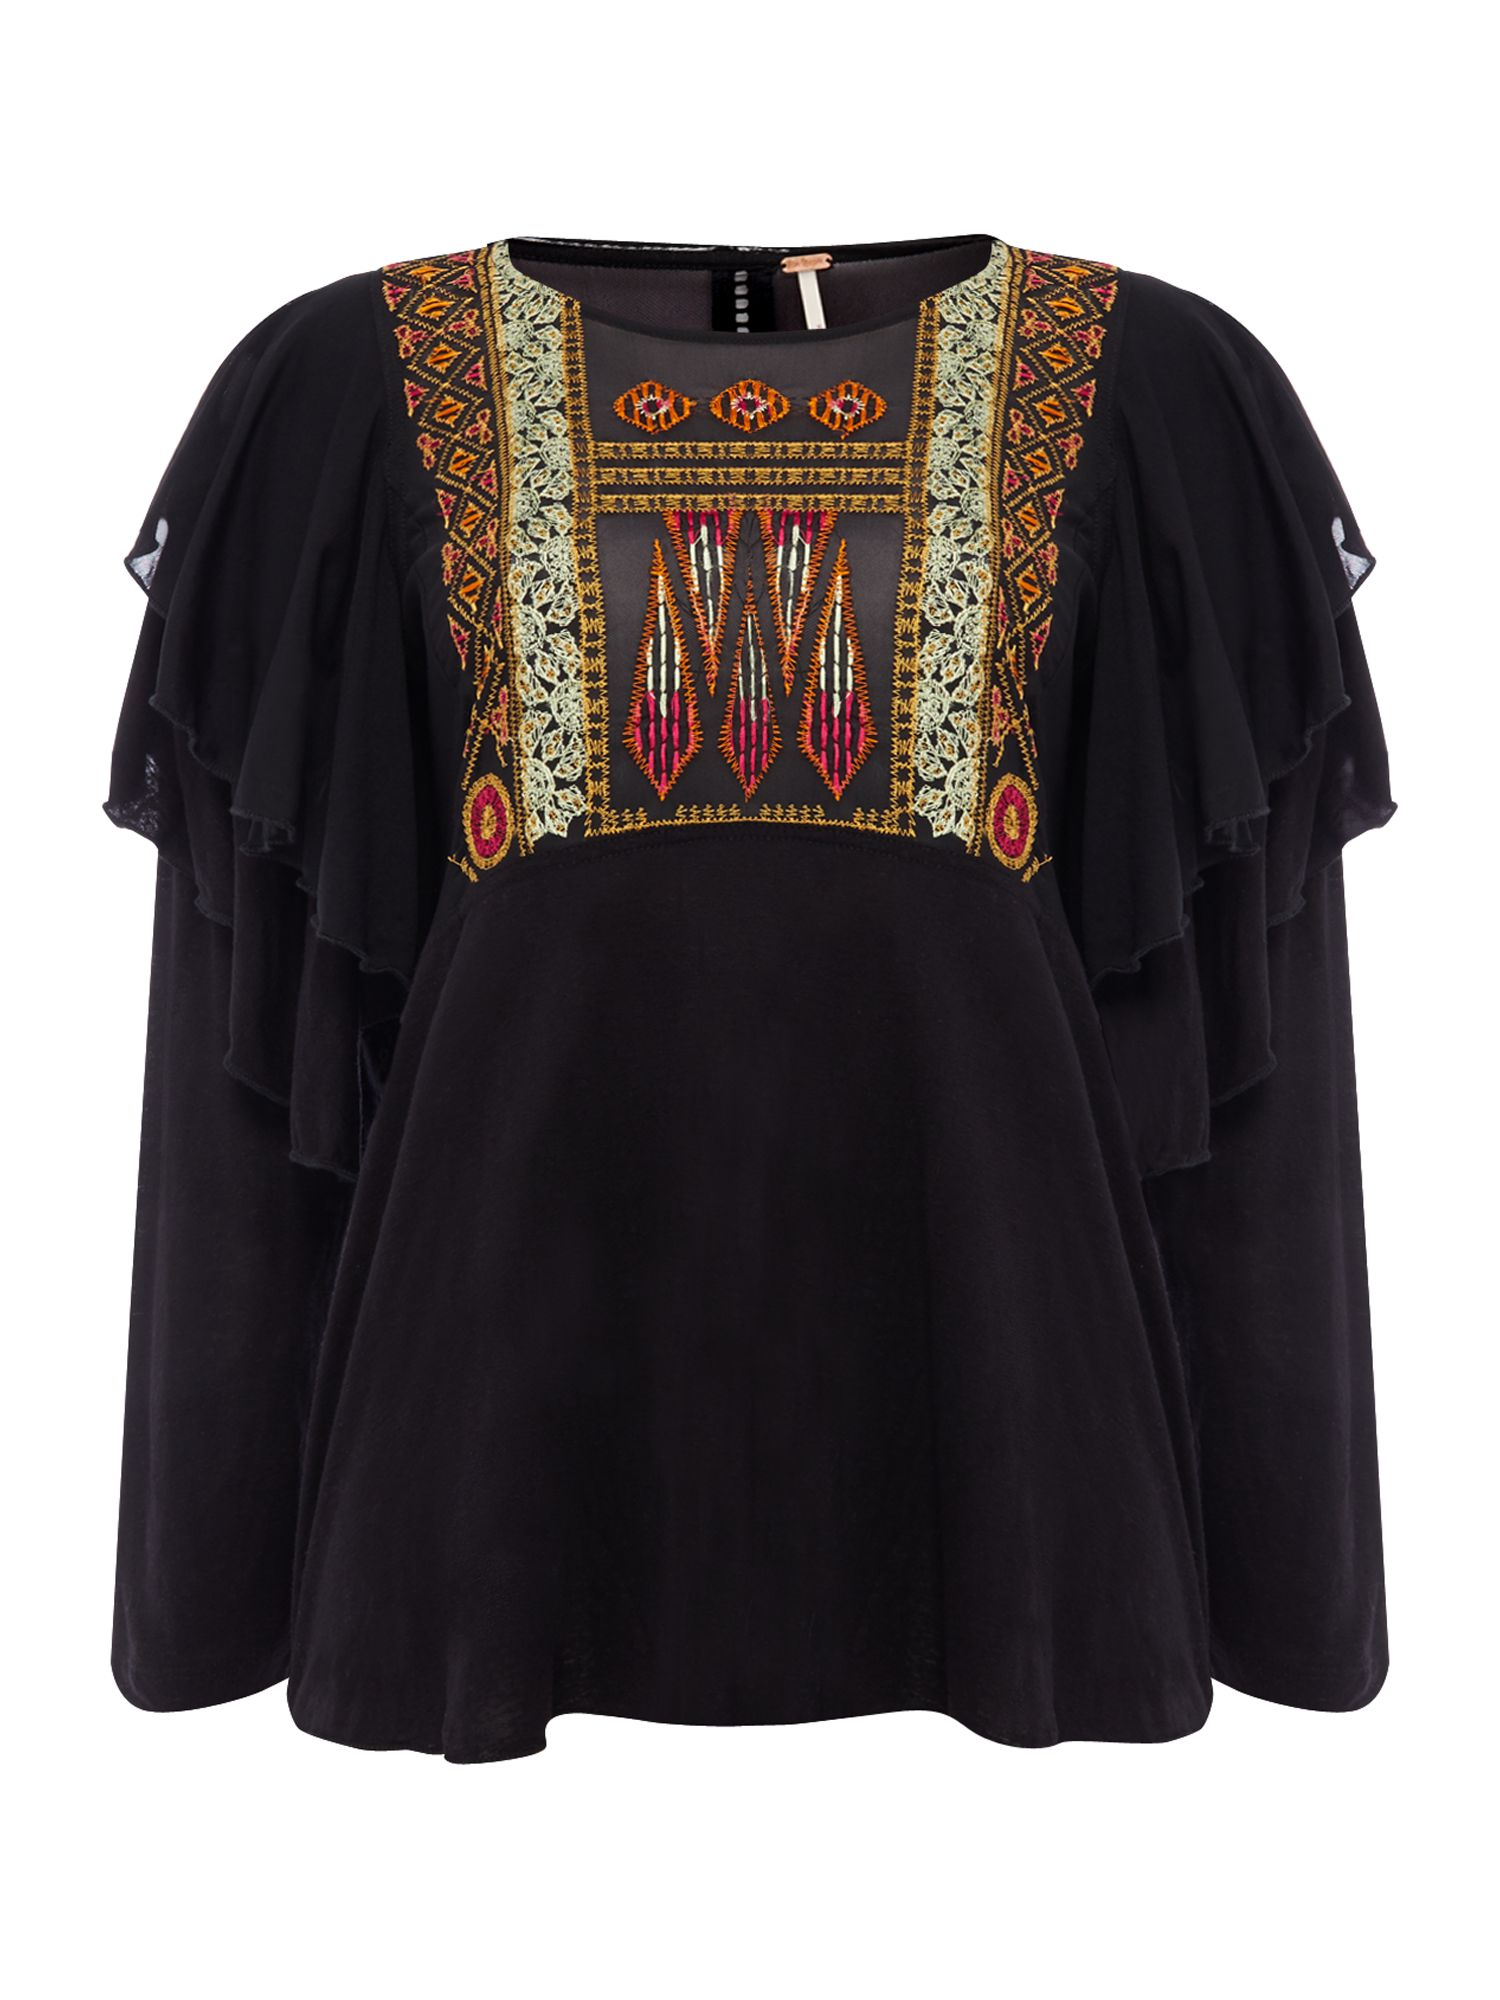 Free People La Cienga Frilled Top With Emroidery, Black